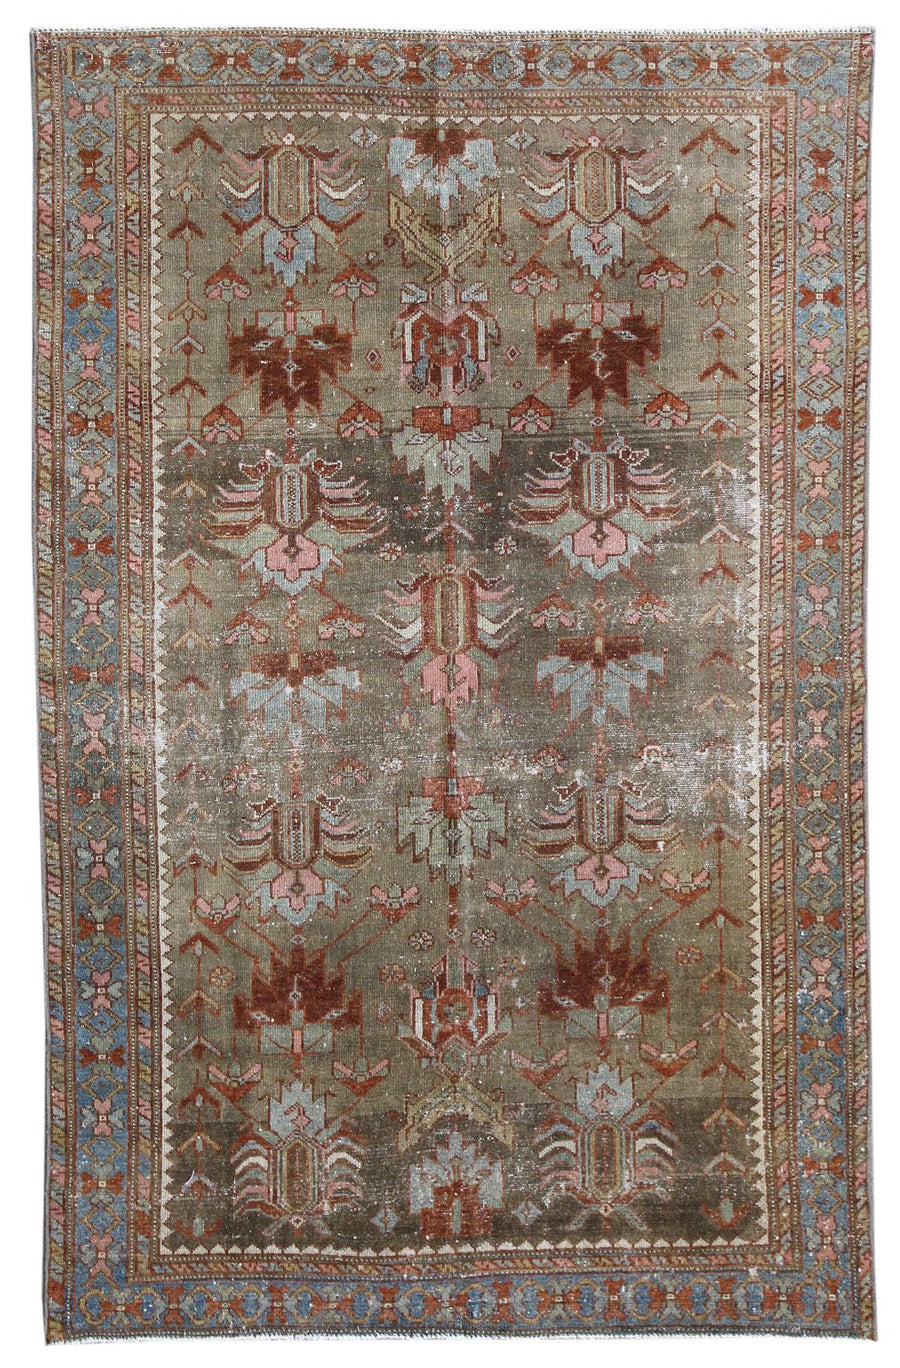 MALAYER HANDKNOTTED RUG, J58728